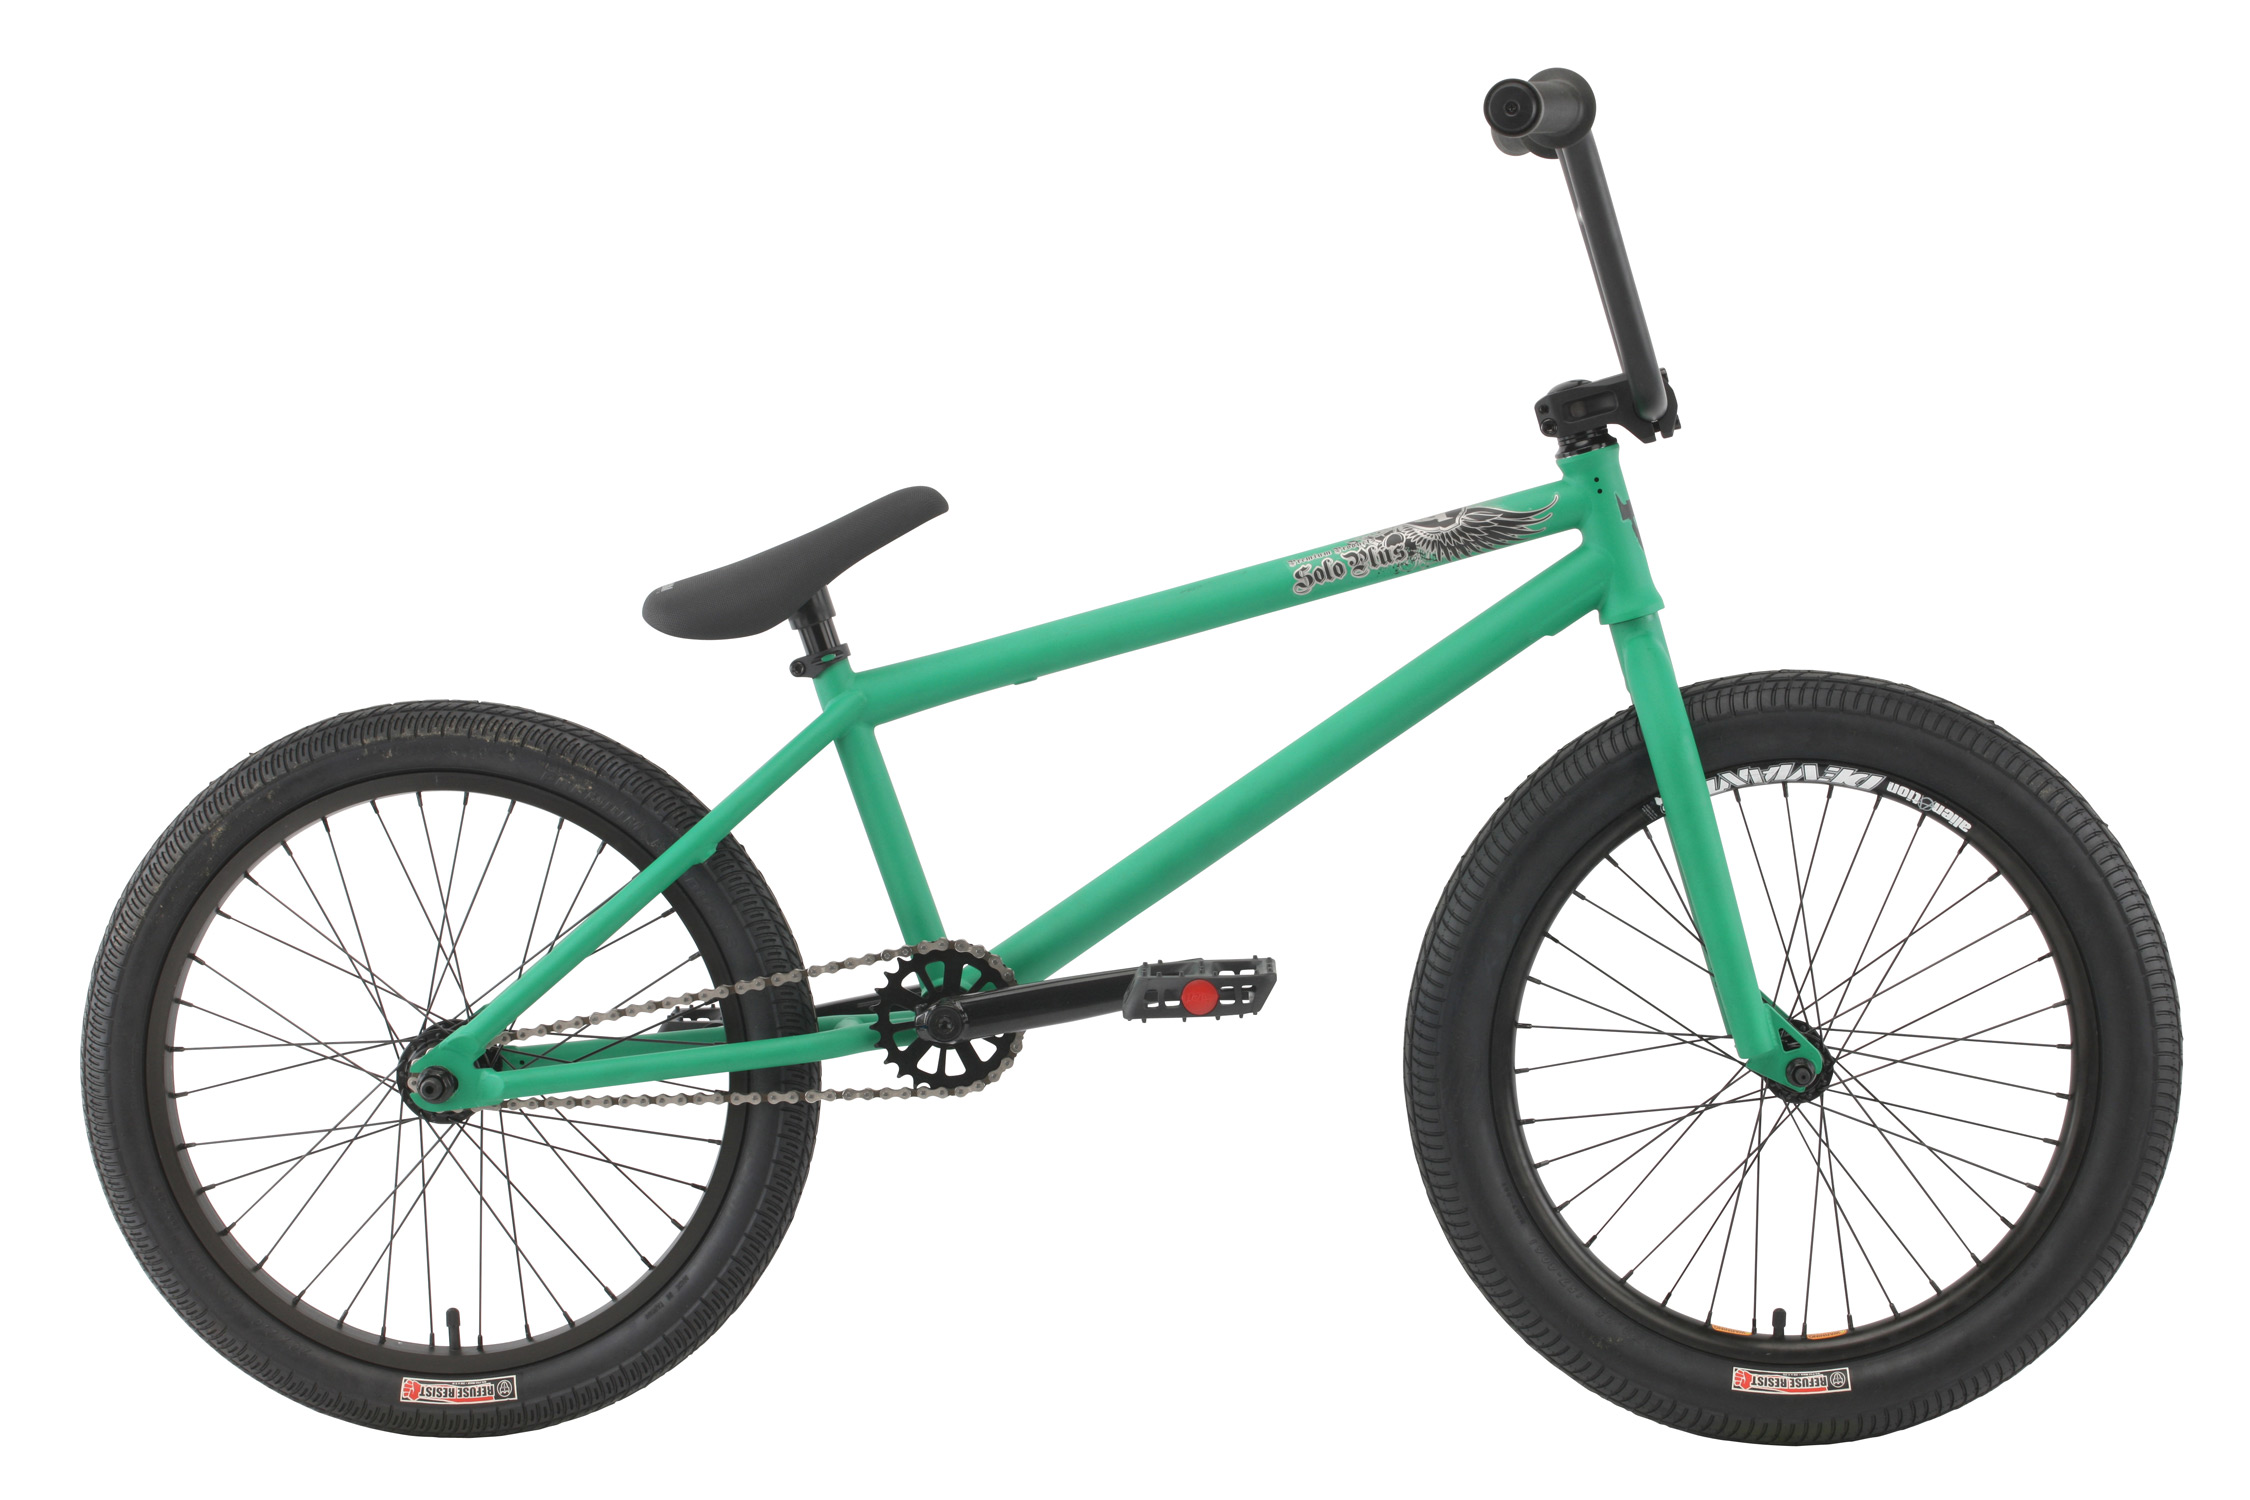 "BMX Key Features of the Premium Solo Plus BMX Bike: Premium frame with a chromoly down tube, Mid BB shell, internal head tube Odyssey Twisted plastic pedals 8"" rise bar (on 20.5"") or 8.25"" (on 21"") with alloy front load stem Three-piece 175mm chromoly 8-spline cranks with sealed Mid BB 25/9 gearing Alloy sealed bearing cassette hub with 9T driver and 14mm axle Premium Street tires; 2.25"" front, 2.0"" rear Premium Slim padded seat w/ built-in alloy post WEIGHT 25.25lbs FRAME Crmo down tube w/removable brake mounts - 20.5"" or 21"" TT FORK 1 1/8"" Crmo Threadless steer tube - w/Hi-ten tapered legs CRANKS 3 pc. tubular Crmo 175mm w/sealed MID BB PEDALS Odyssey plastic pedals TIRES Premium Street Tires, 20x2.25 F / 20x2.0 R WHEELS Alienation 36h Deviant dw front/36h Black Sheep dw rear, 36H alloy sealed 3/8"" Frt, 36H Alloy sealed cassette rear 14mm w/9T driver ROTOR N/A Straight Cable GRIPS Premium Counterfeit BARS Hi-ten - 8"" rise w/20.5"" frame, 8.25"" rise w/21"" frame SEAT Premium slim padded one piece seat with built in post PEGS N/A - $397.95"